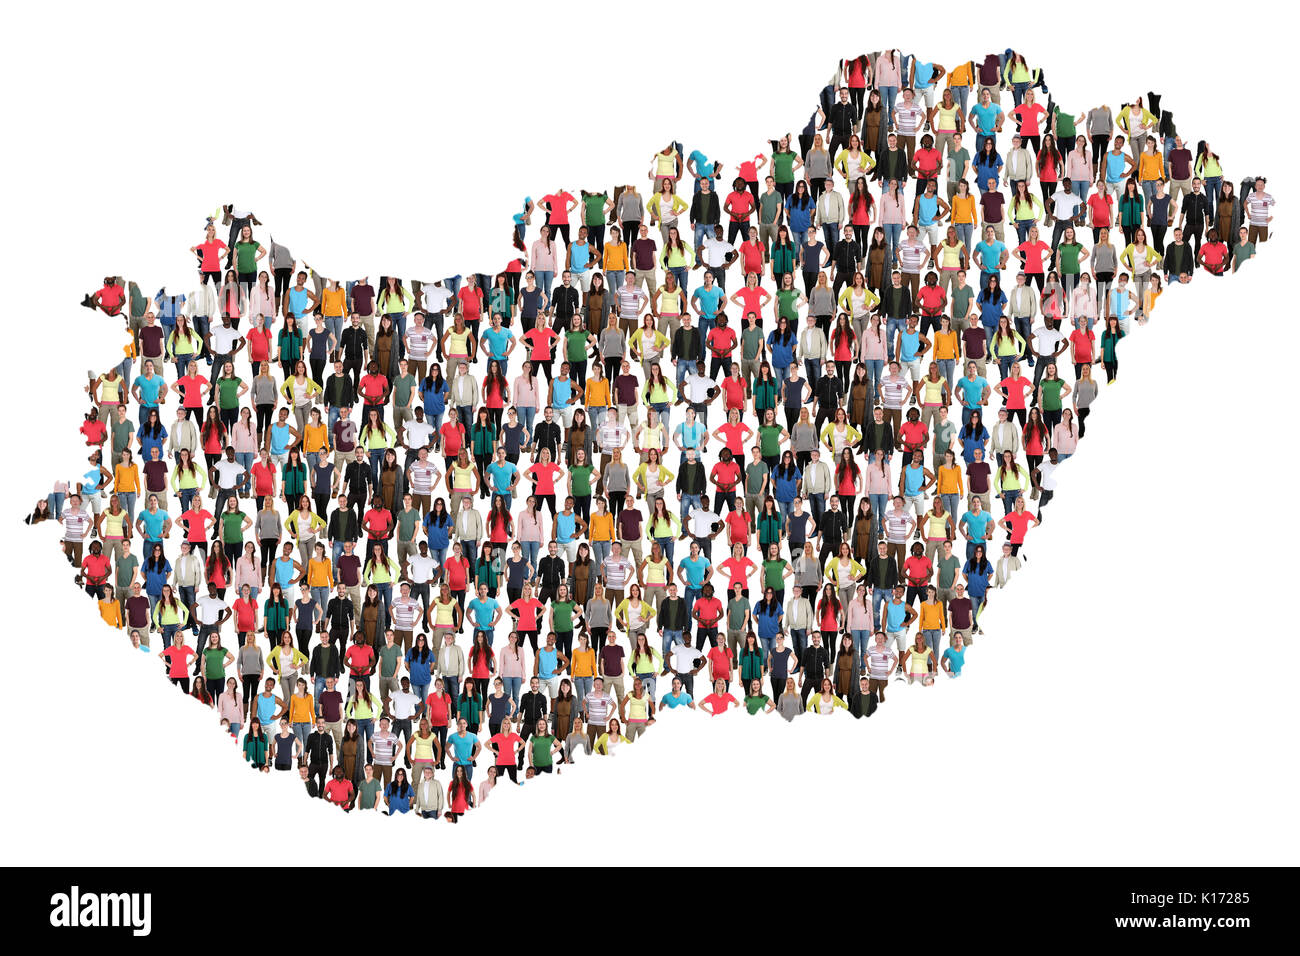 Hungary map multicultural group of people integration immigration diversity isolated - Stock Image